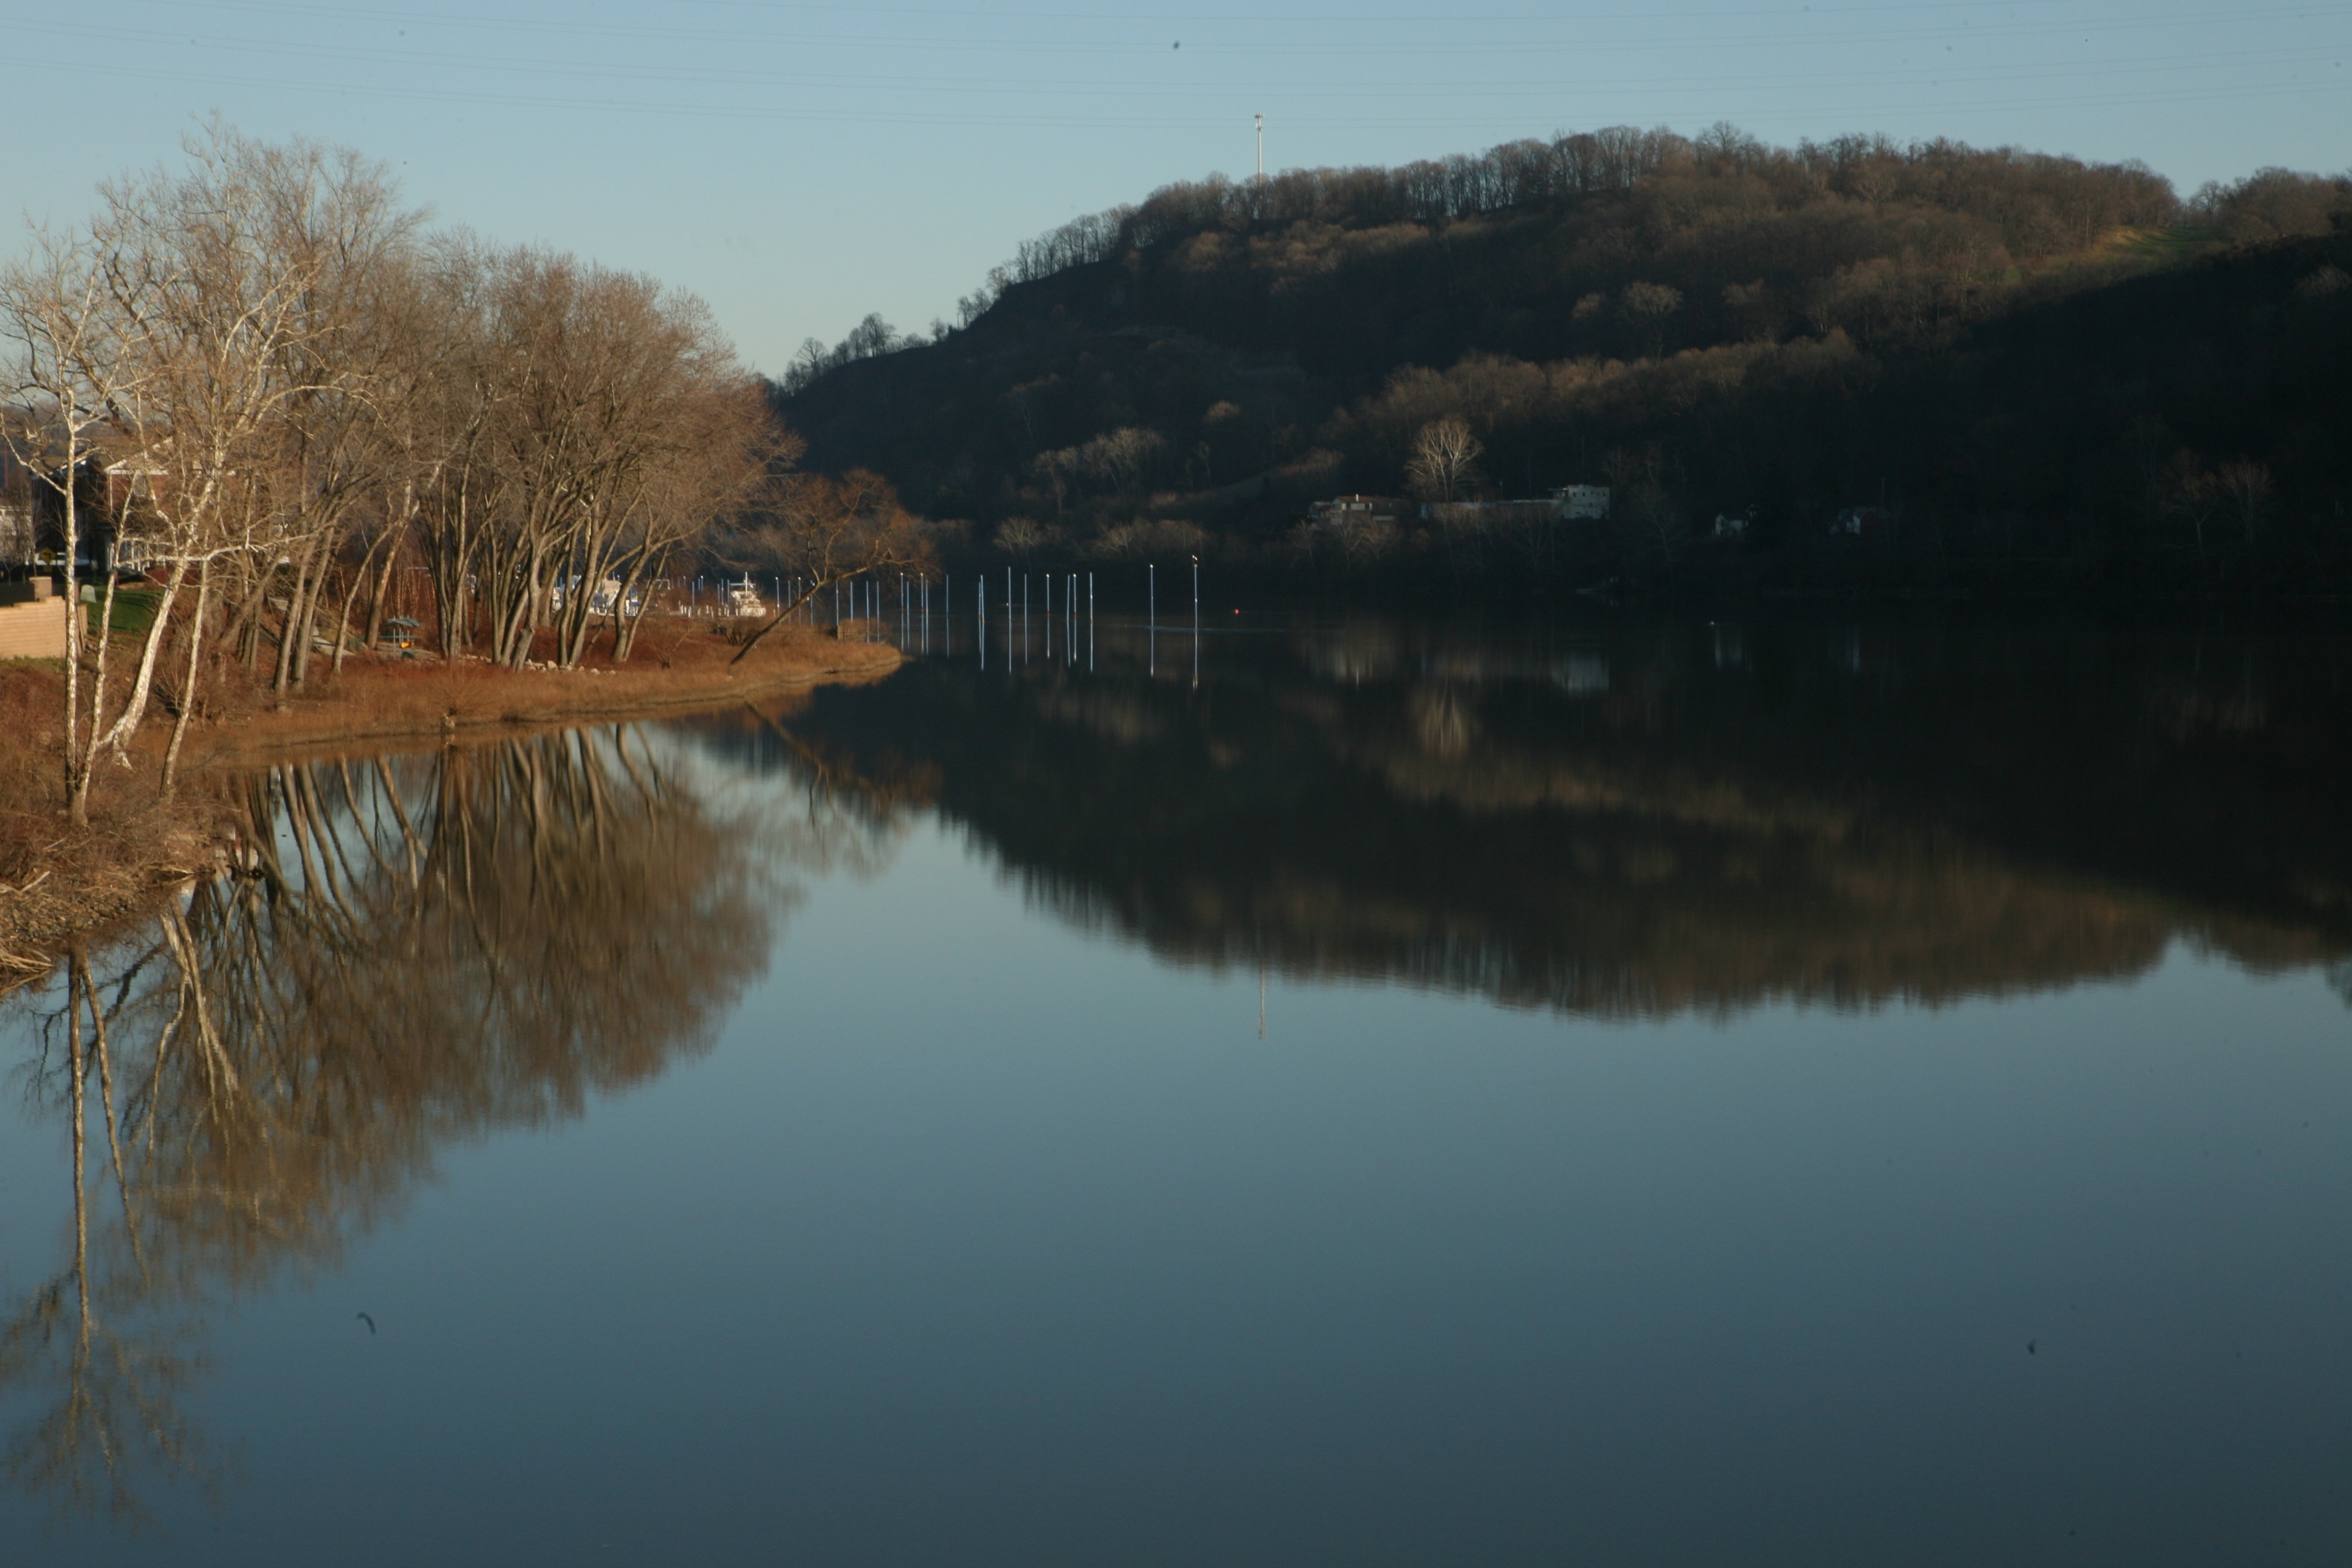 Allegheny River Still as a Lake Sunday Afternoon – Ruth E